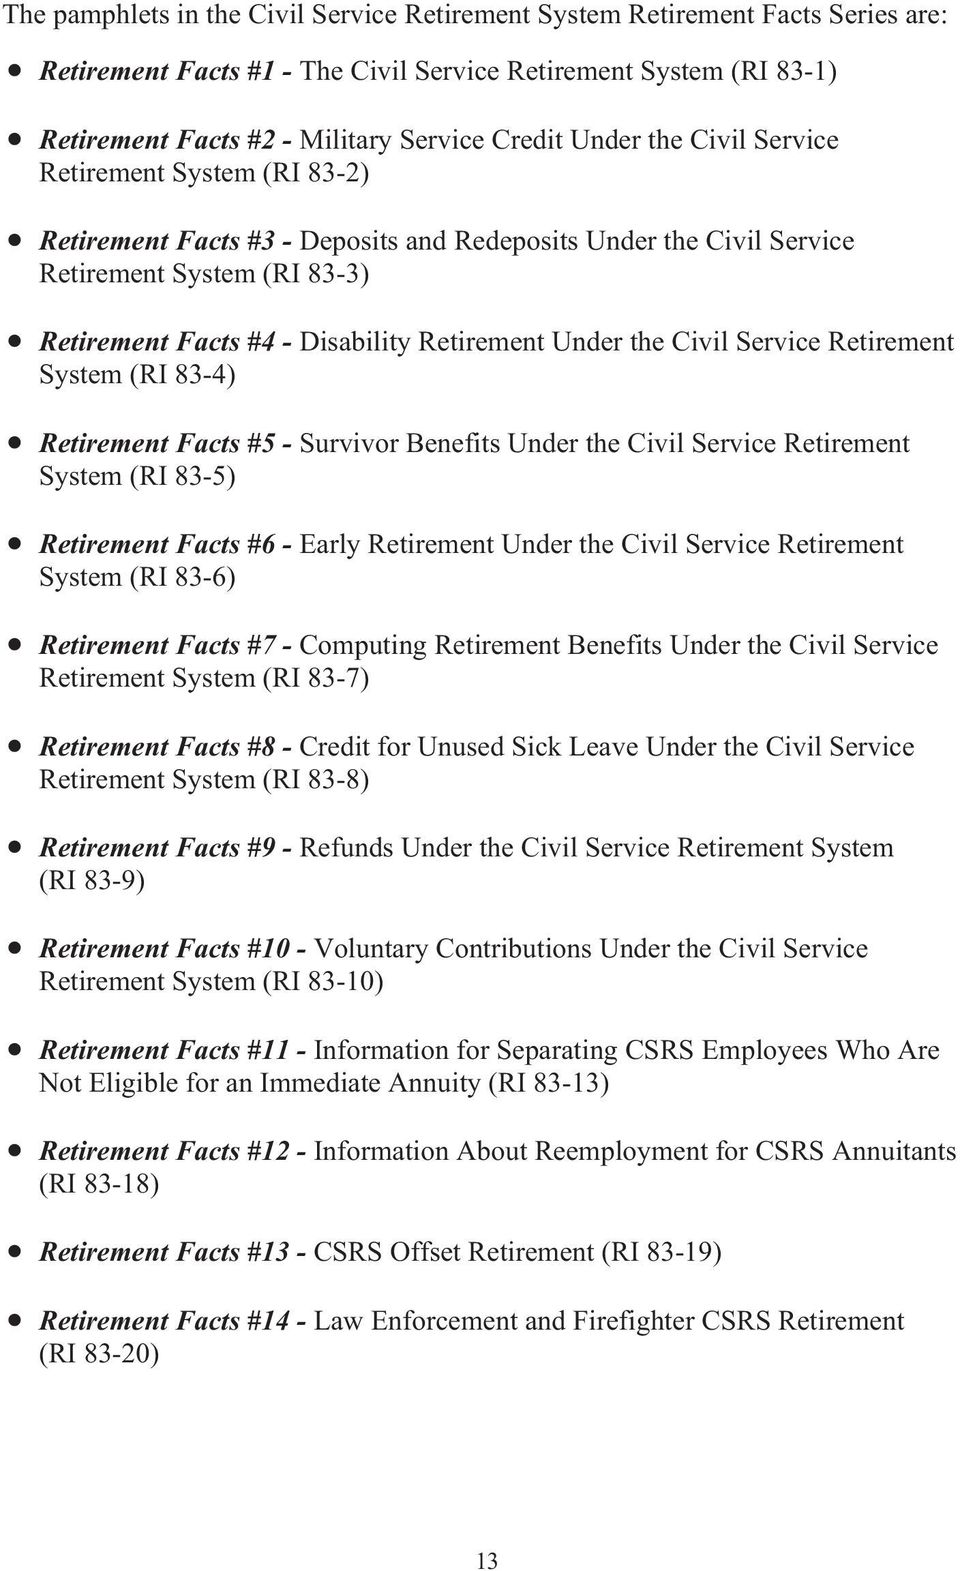 the Civil Service Retirement System (RI 83-4) Retirement Facts #5 - Survivor Benefits Under the Civil Service Retirement System (RI 83-5) Retirement Facts #6 - Early Retirement Under the Civil